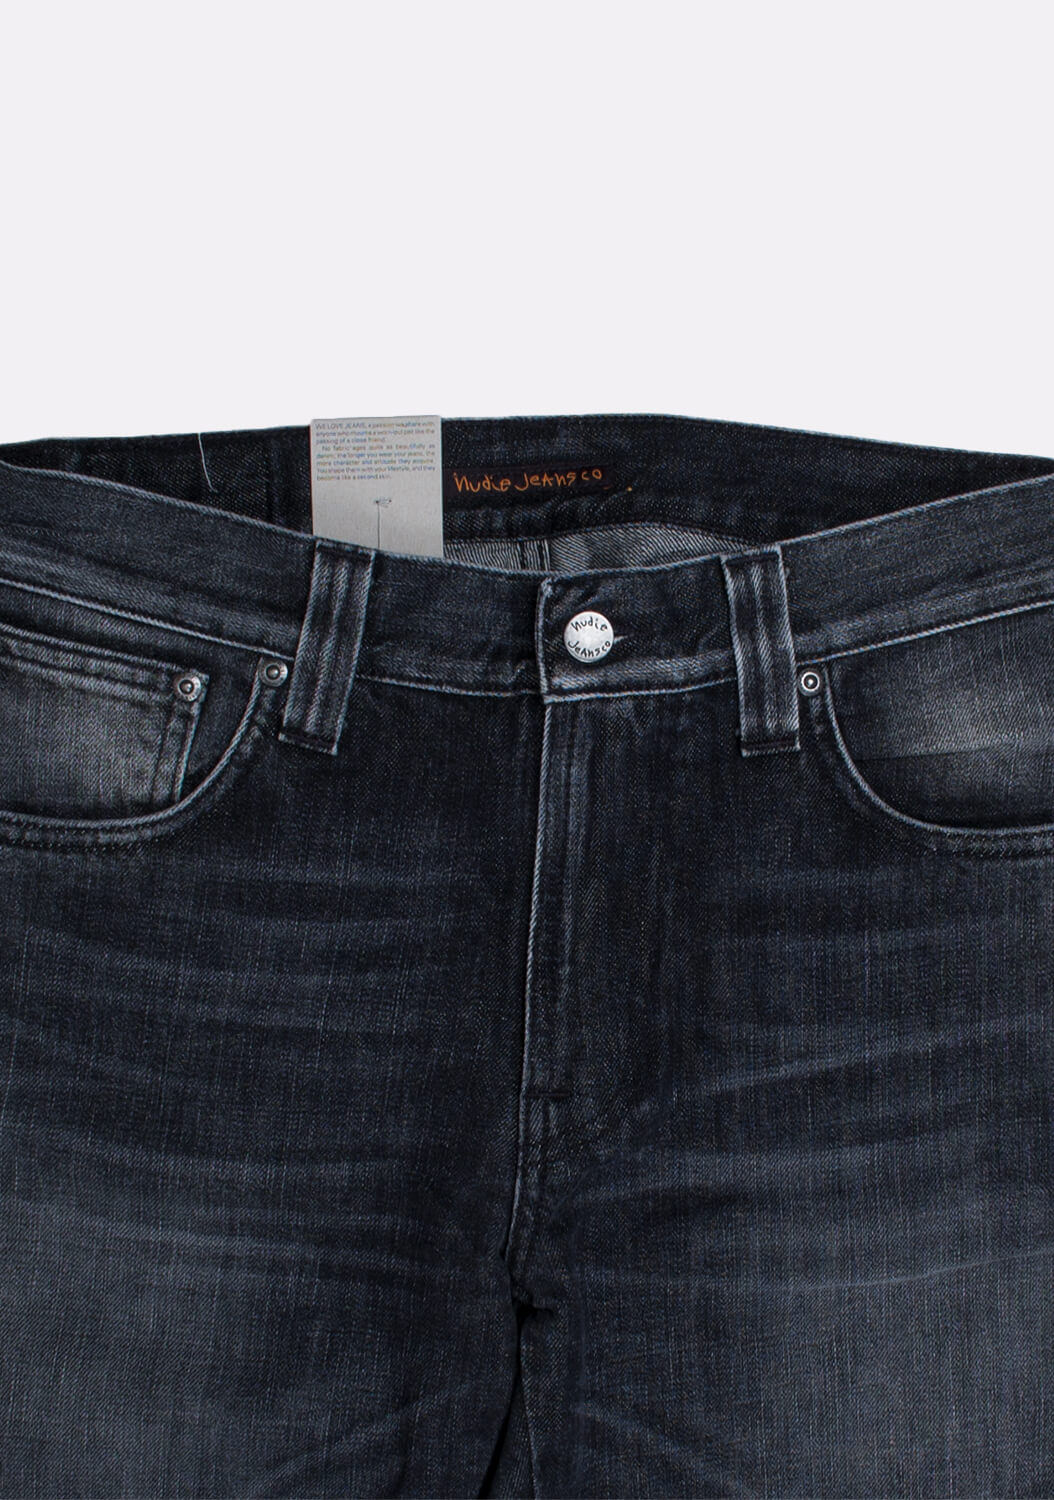 nudie-jeans-slim-jim-org-faded-grey-2